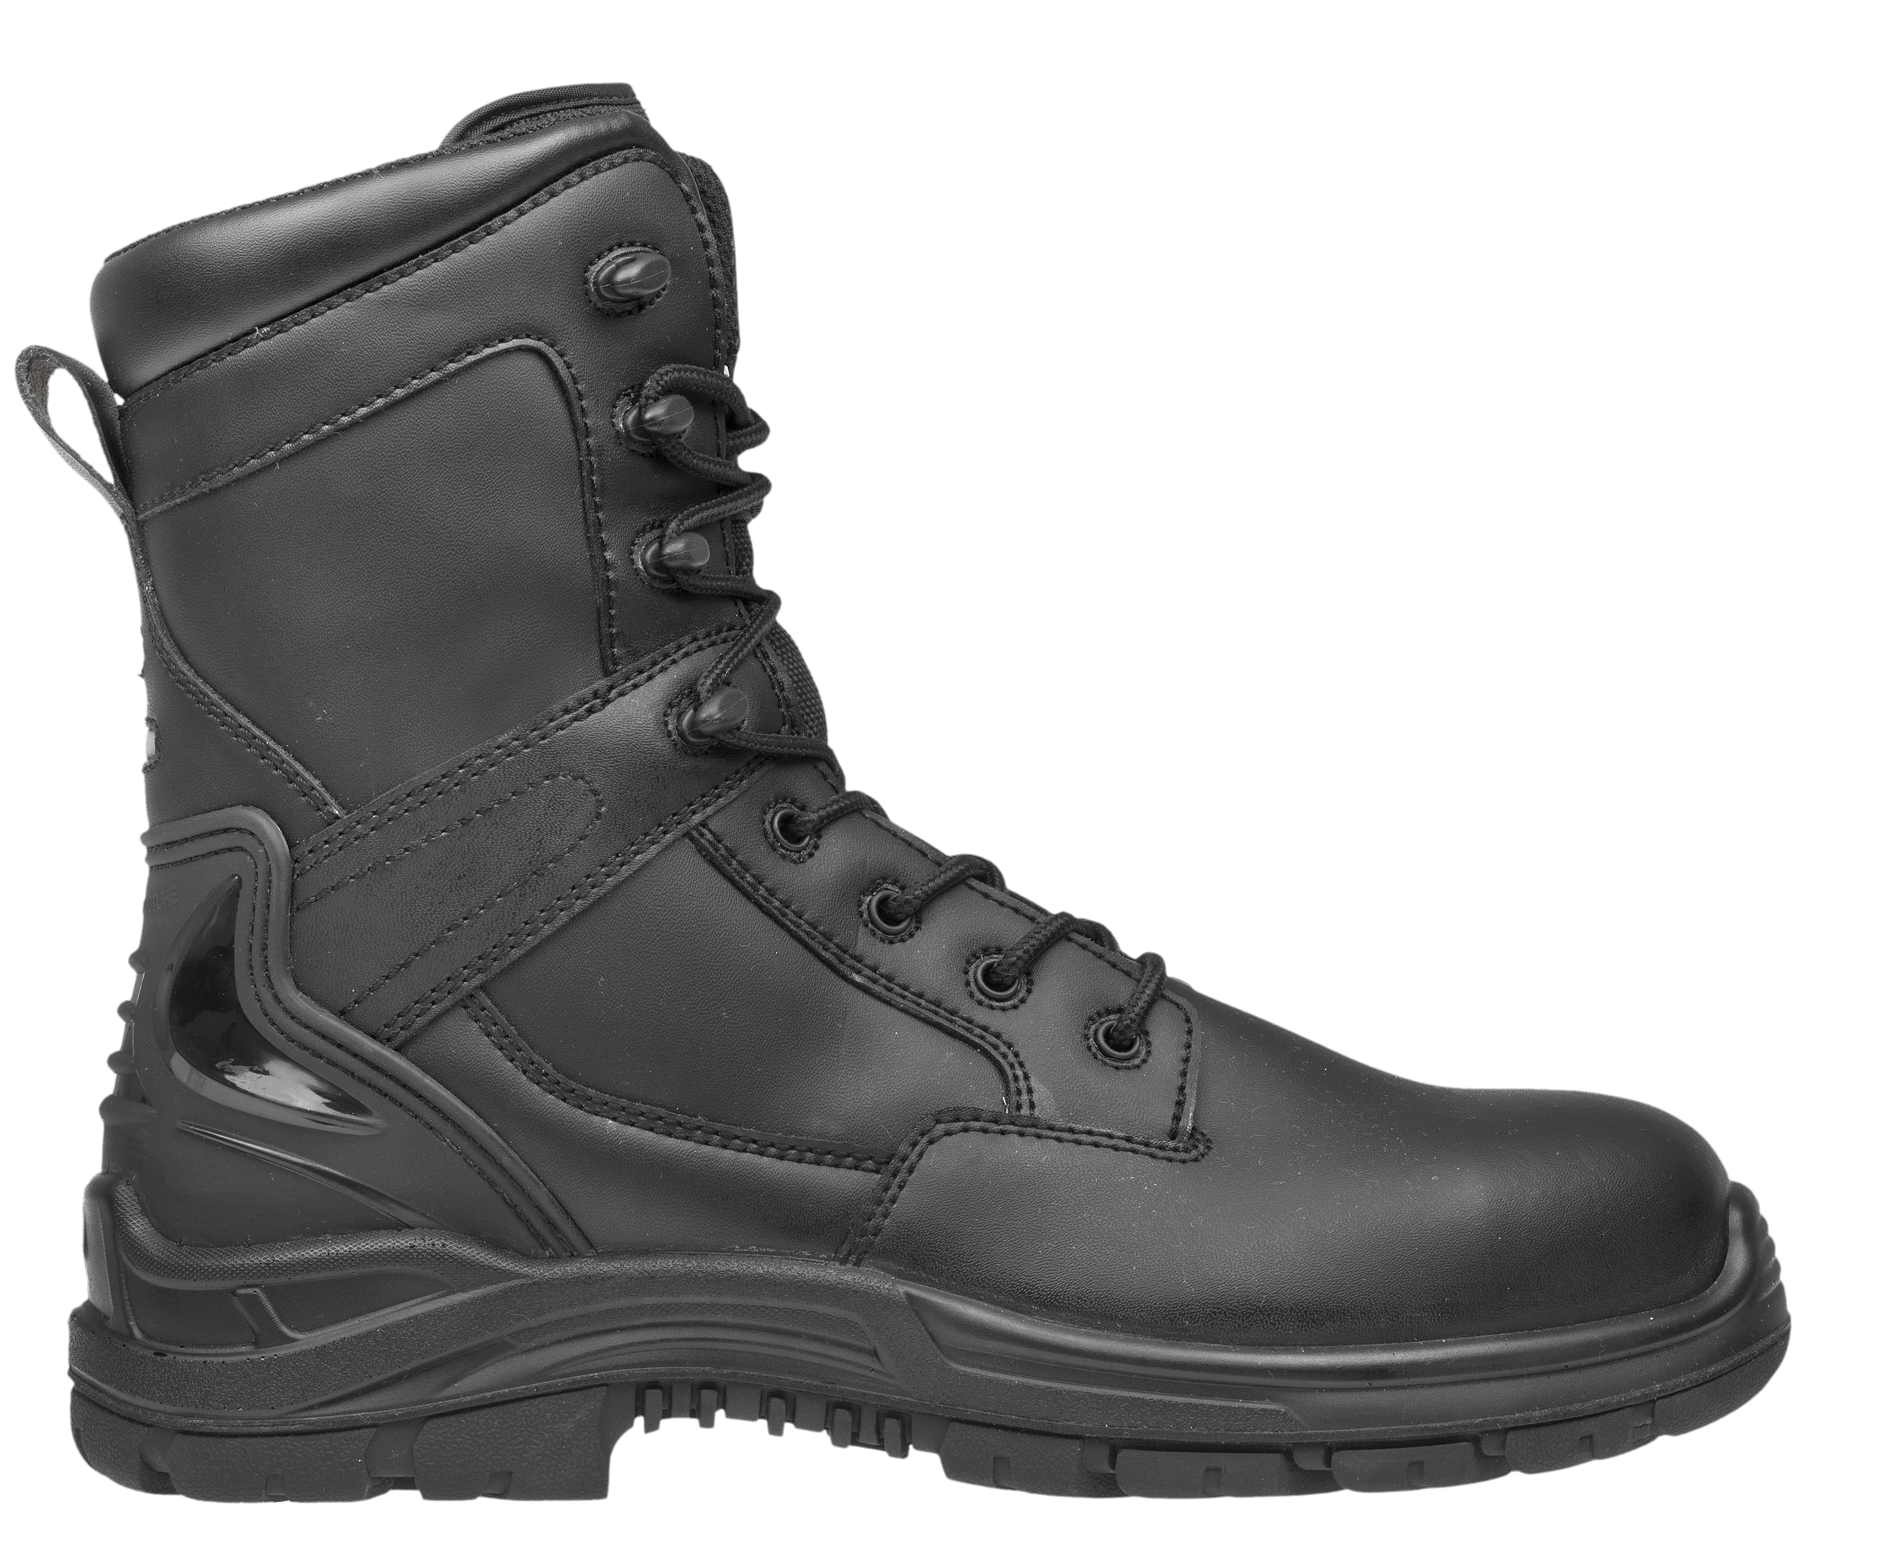 BENNON - BNN COMMODORE S3 SUMMER BOOT